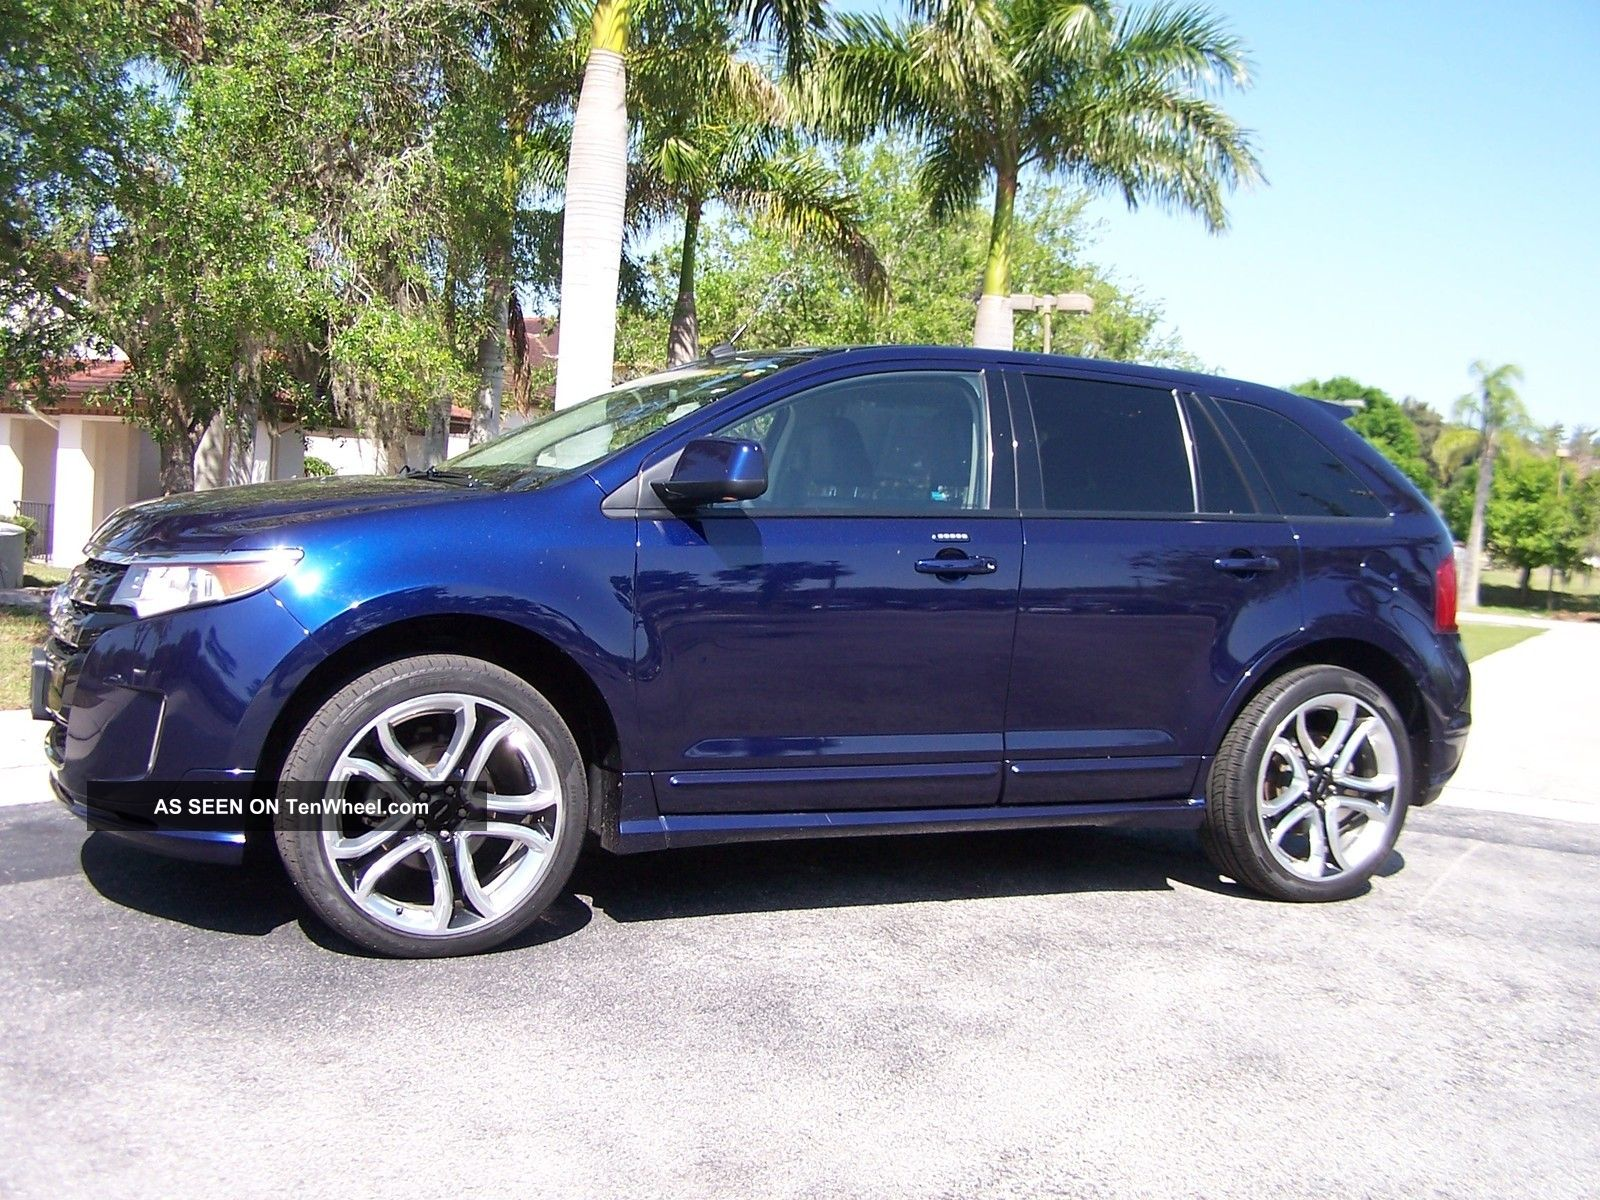 2011 ford edge sport all wheel drive awd pano roof remote start 26k m. Black Bedroom Furniture Sets. Home Design Ideas